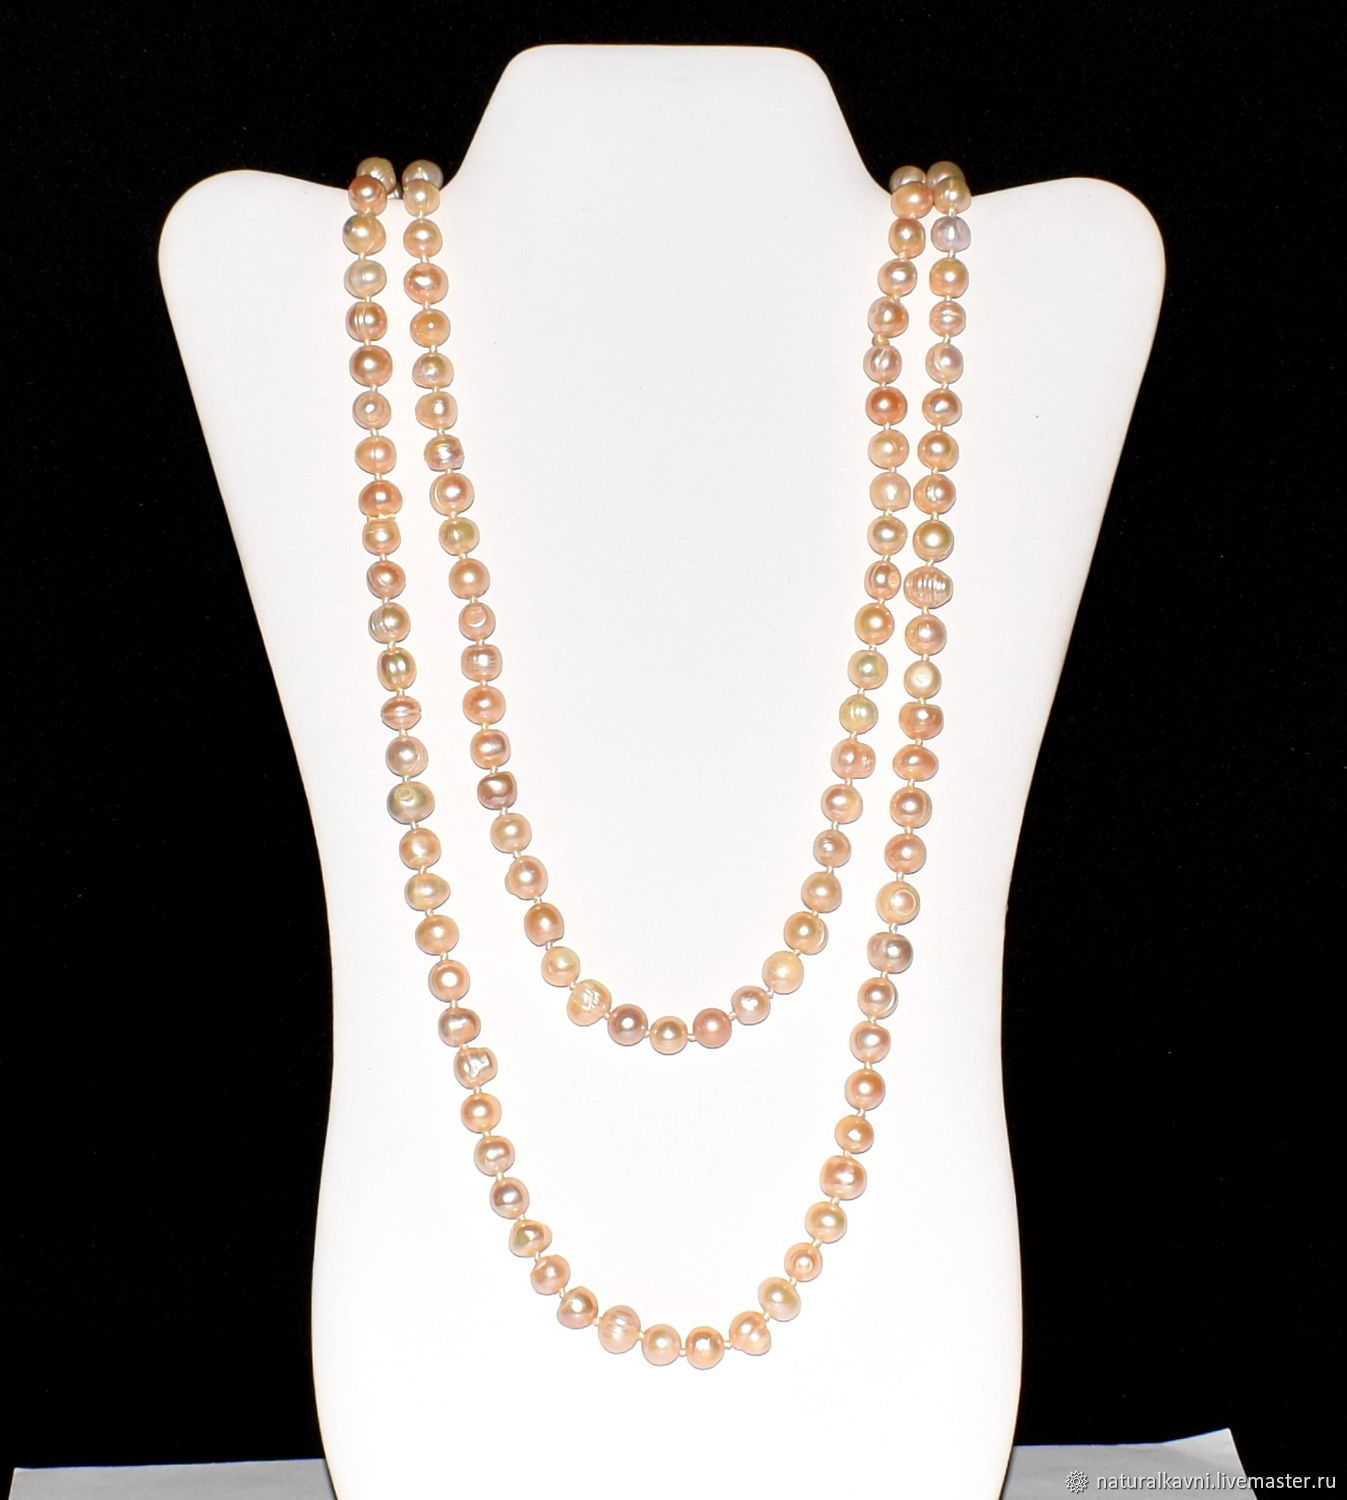 Long beads made of natural pink pearls, Beads2, Moscow,  Фото №1